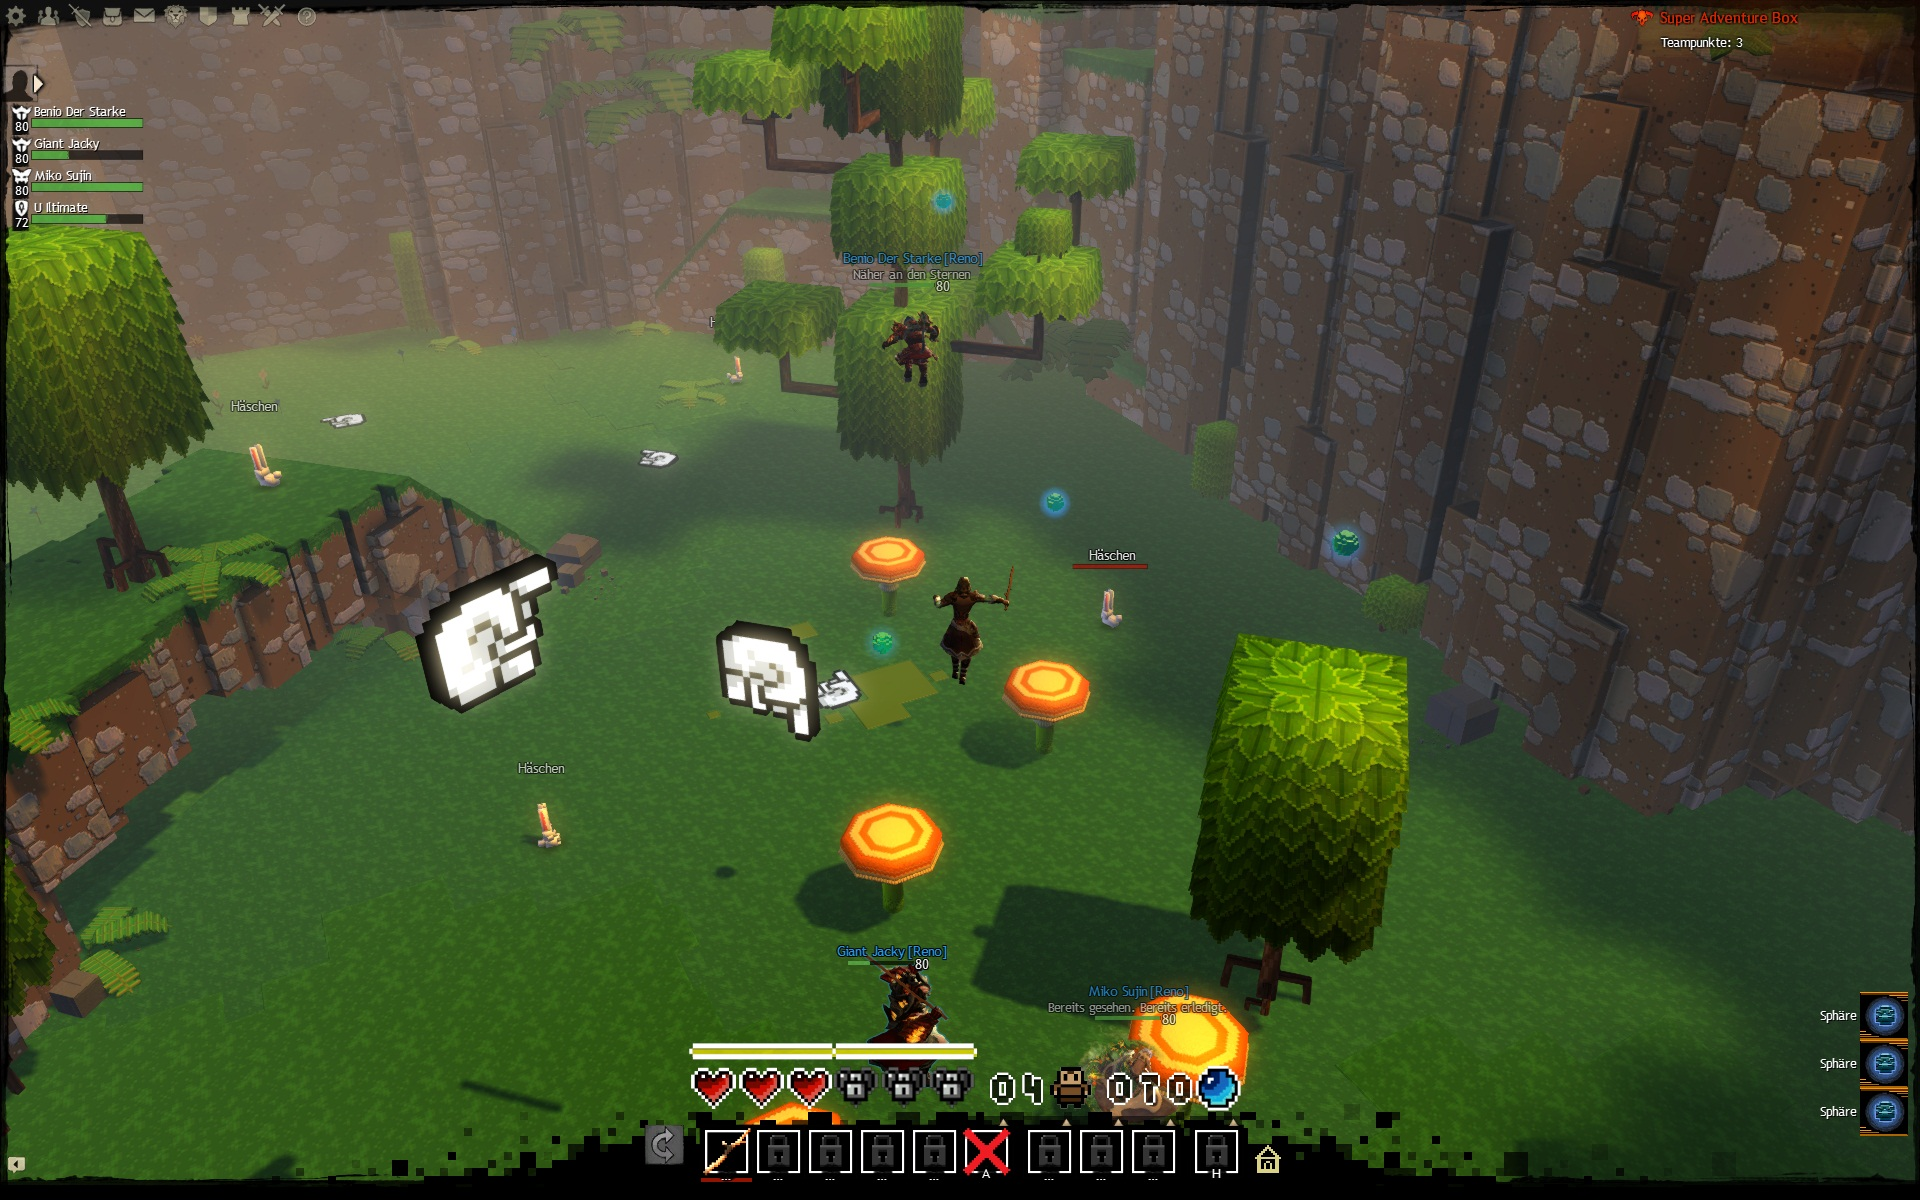 aevis games mount adoption black lion every breed with purchase license available stables them licenses introductory during cost week only 9600 dedicated collectors currently discount home gems sold take bundle through total 2000 defaults still while regions stuck pretty limited customization makes which have skins wouldnt balthazar also mind much urks